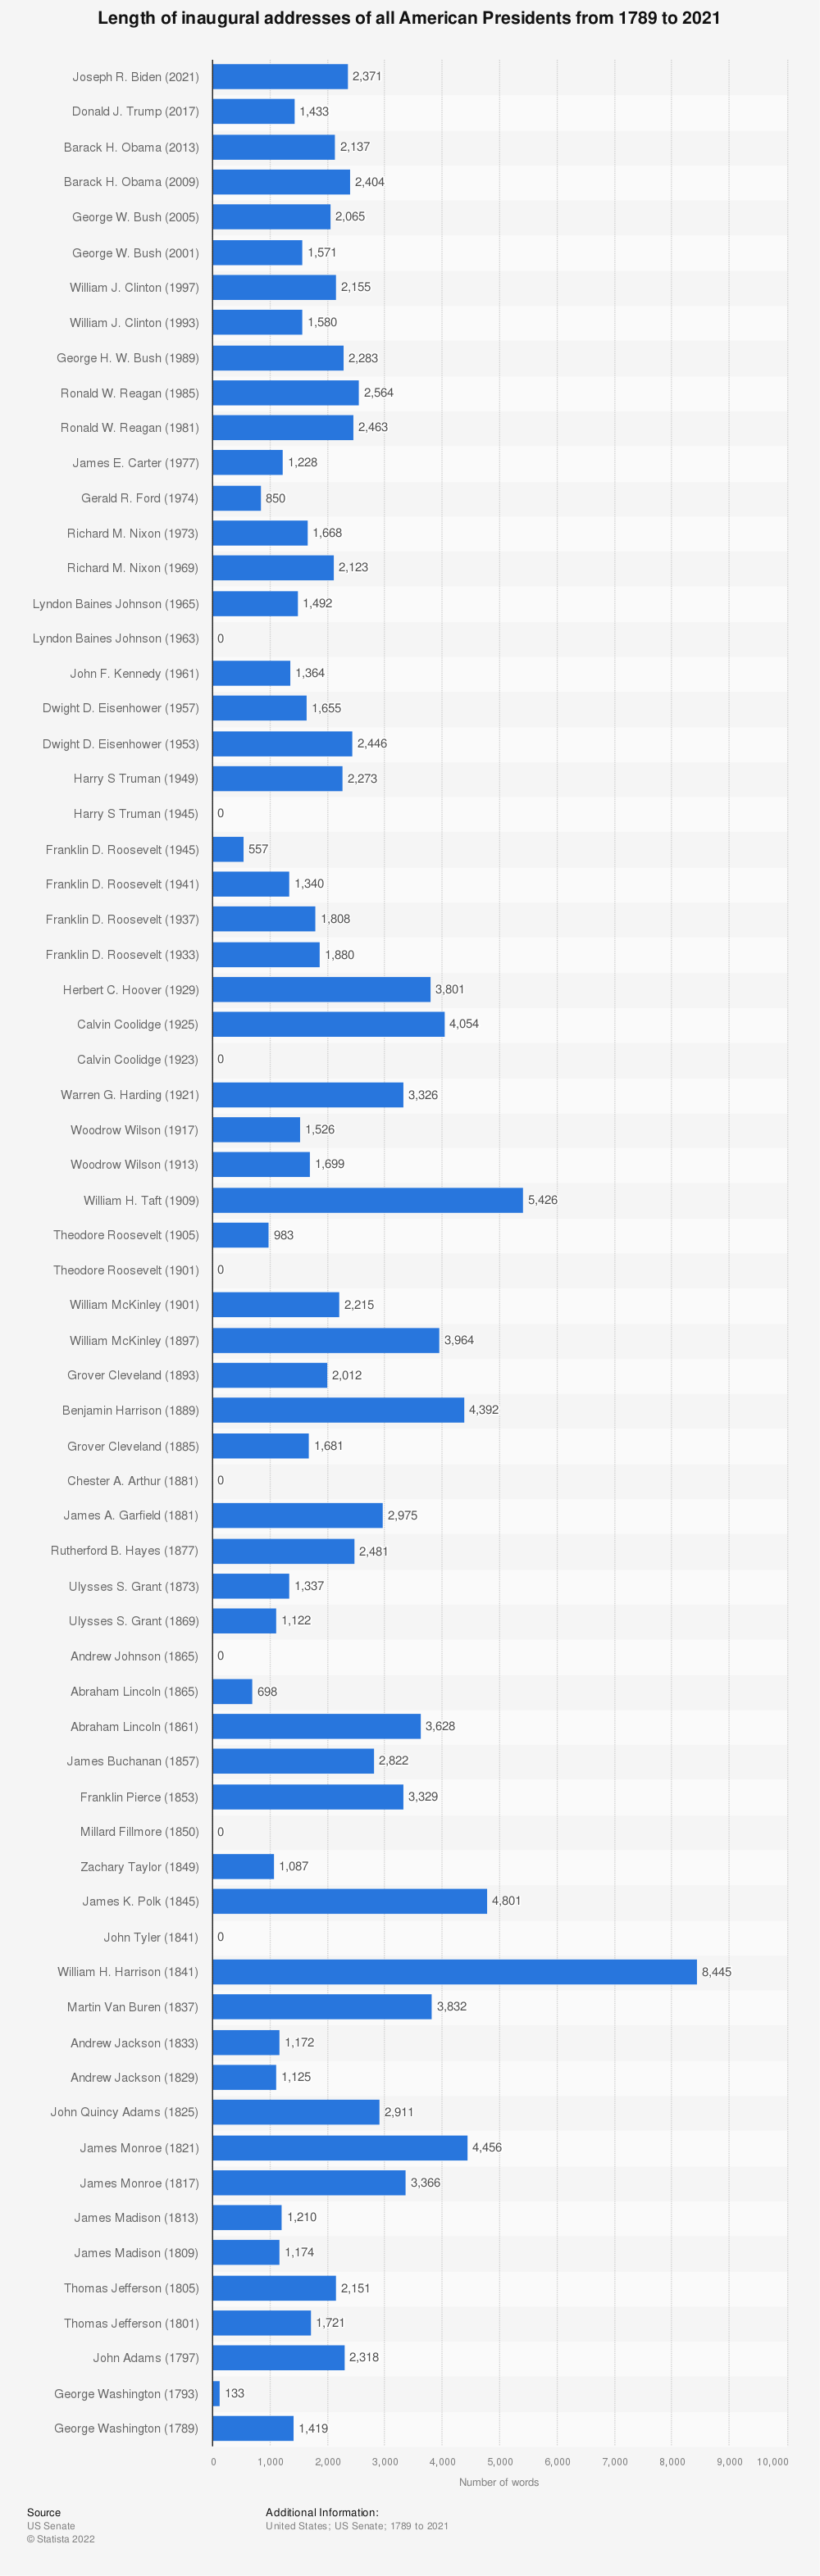 Statistic: Length of inaugural addresses of all American Presidents from 1789 to 2017 | Statista